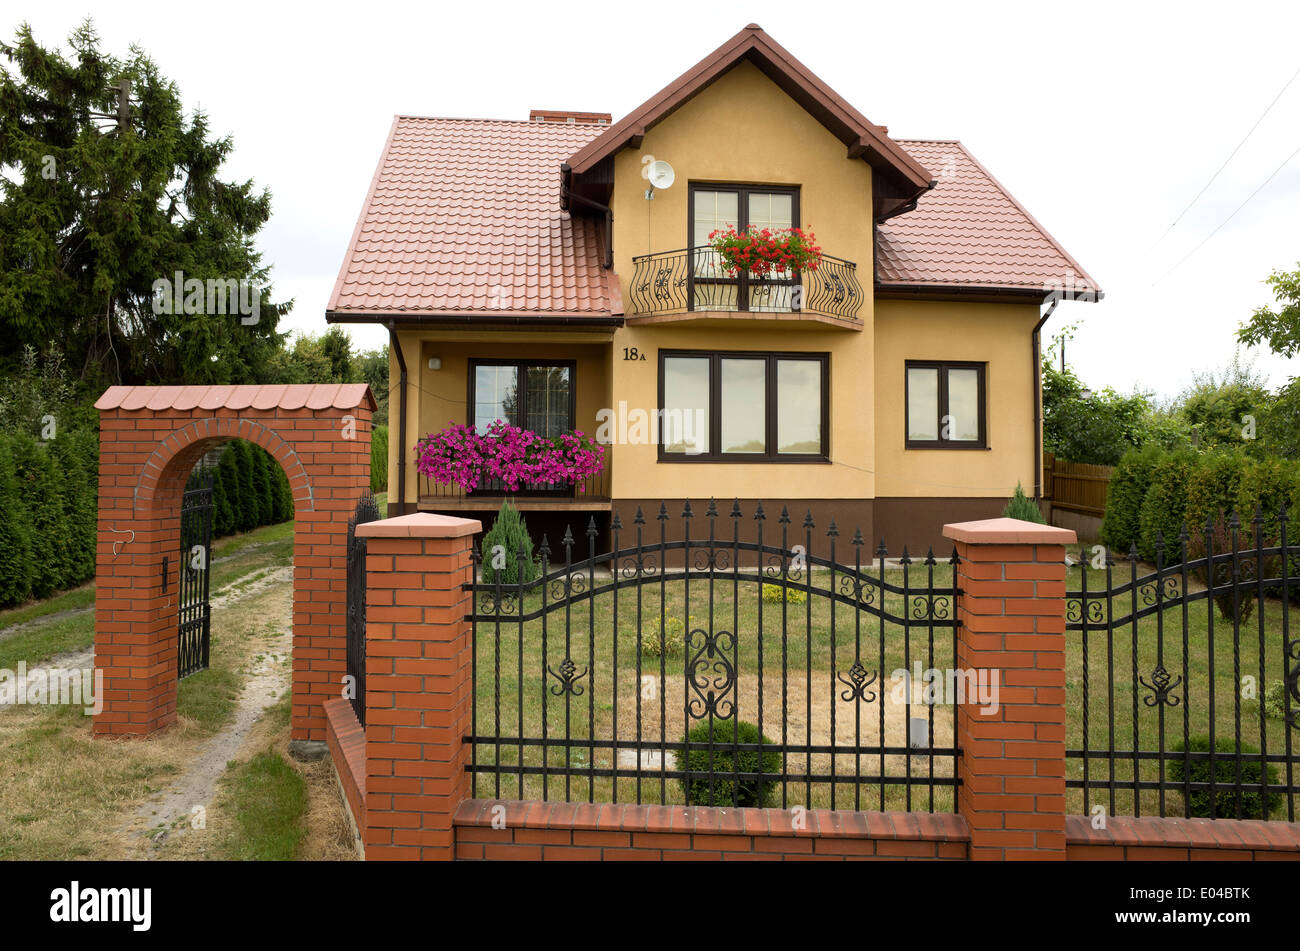 Modern Polish House With Wrought Iron Fence With Brick